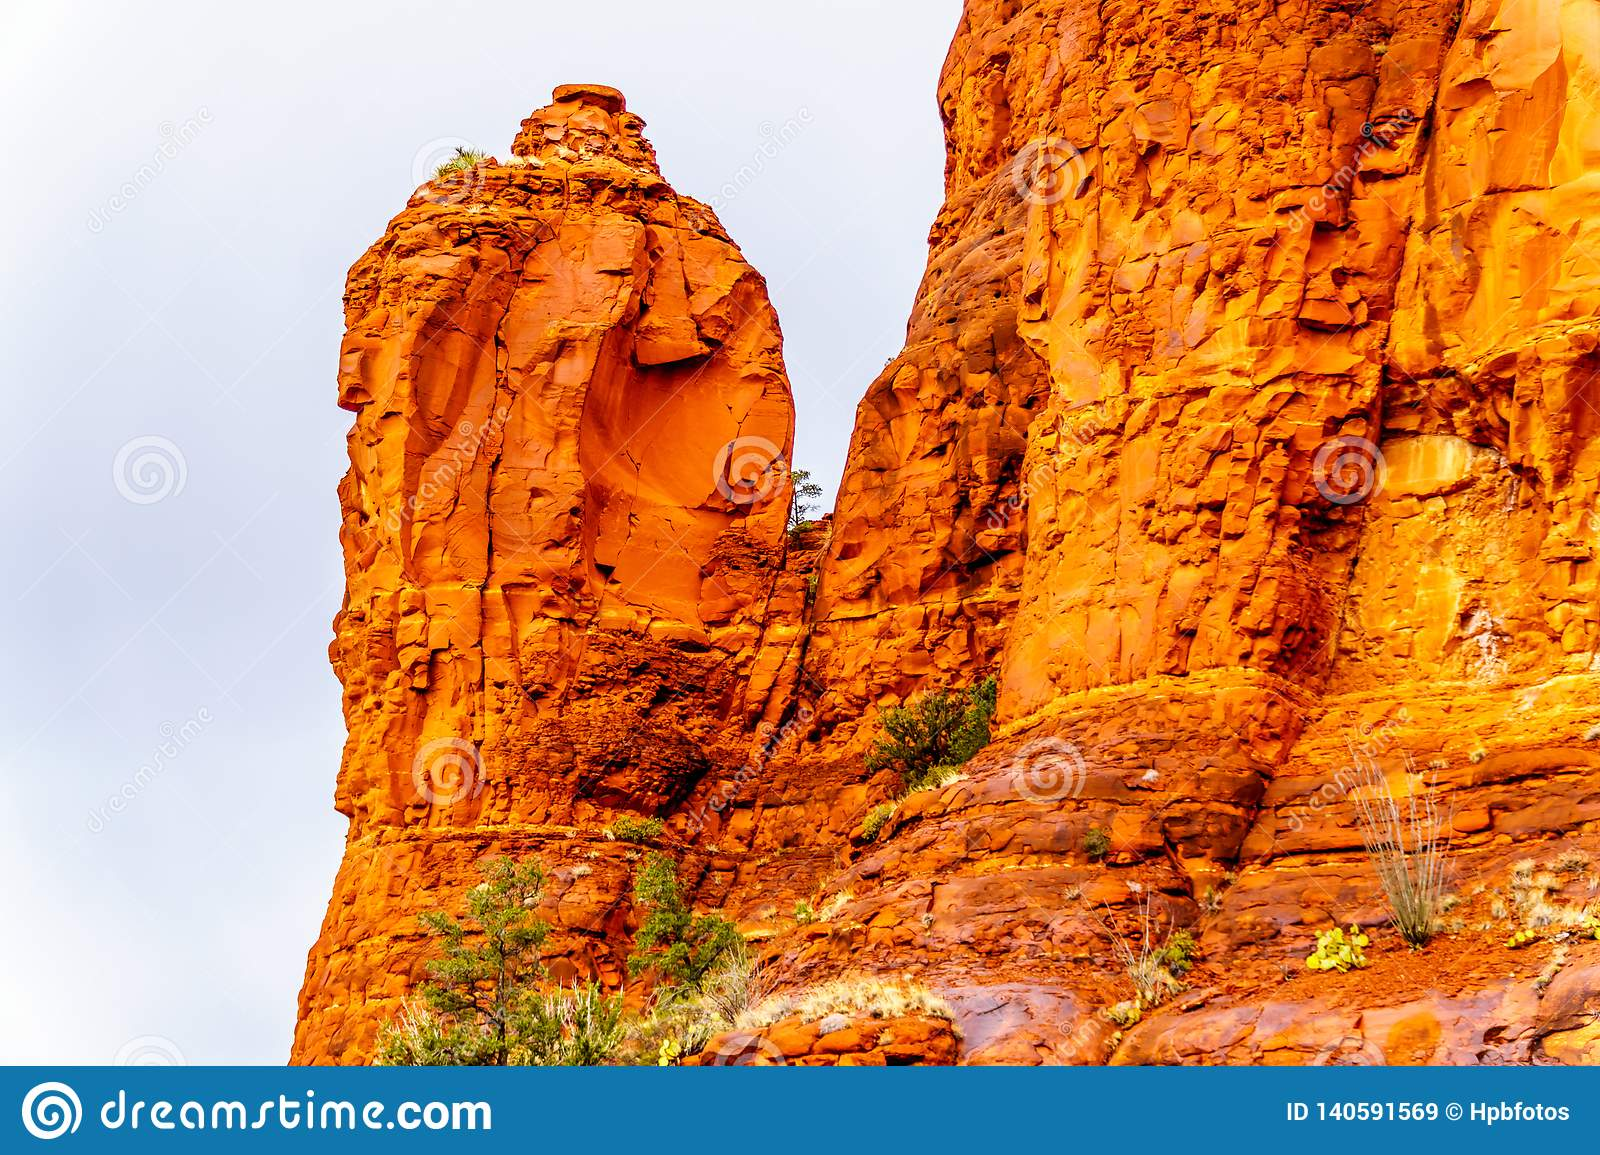 Rain pouring down on the geological formations of the red sandstone buttes surrounding the Chapel of the Holy Cross at Sedona